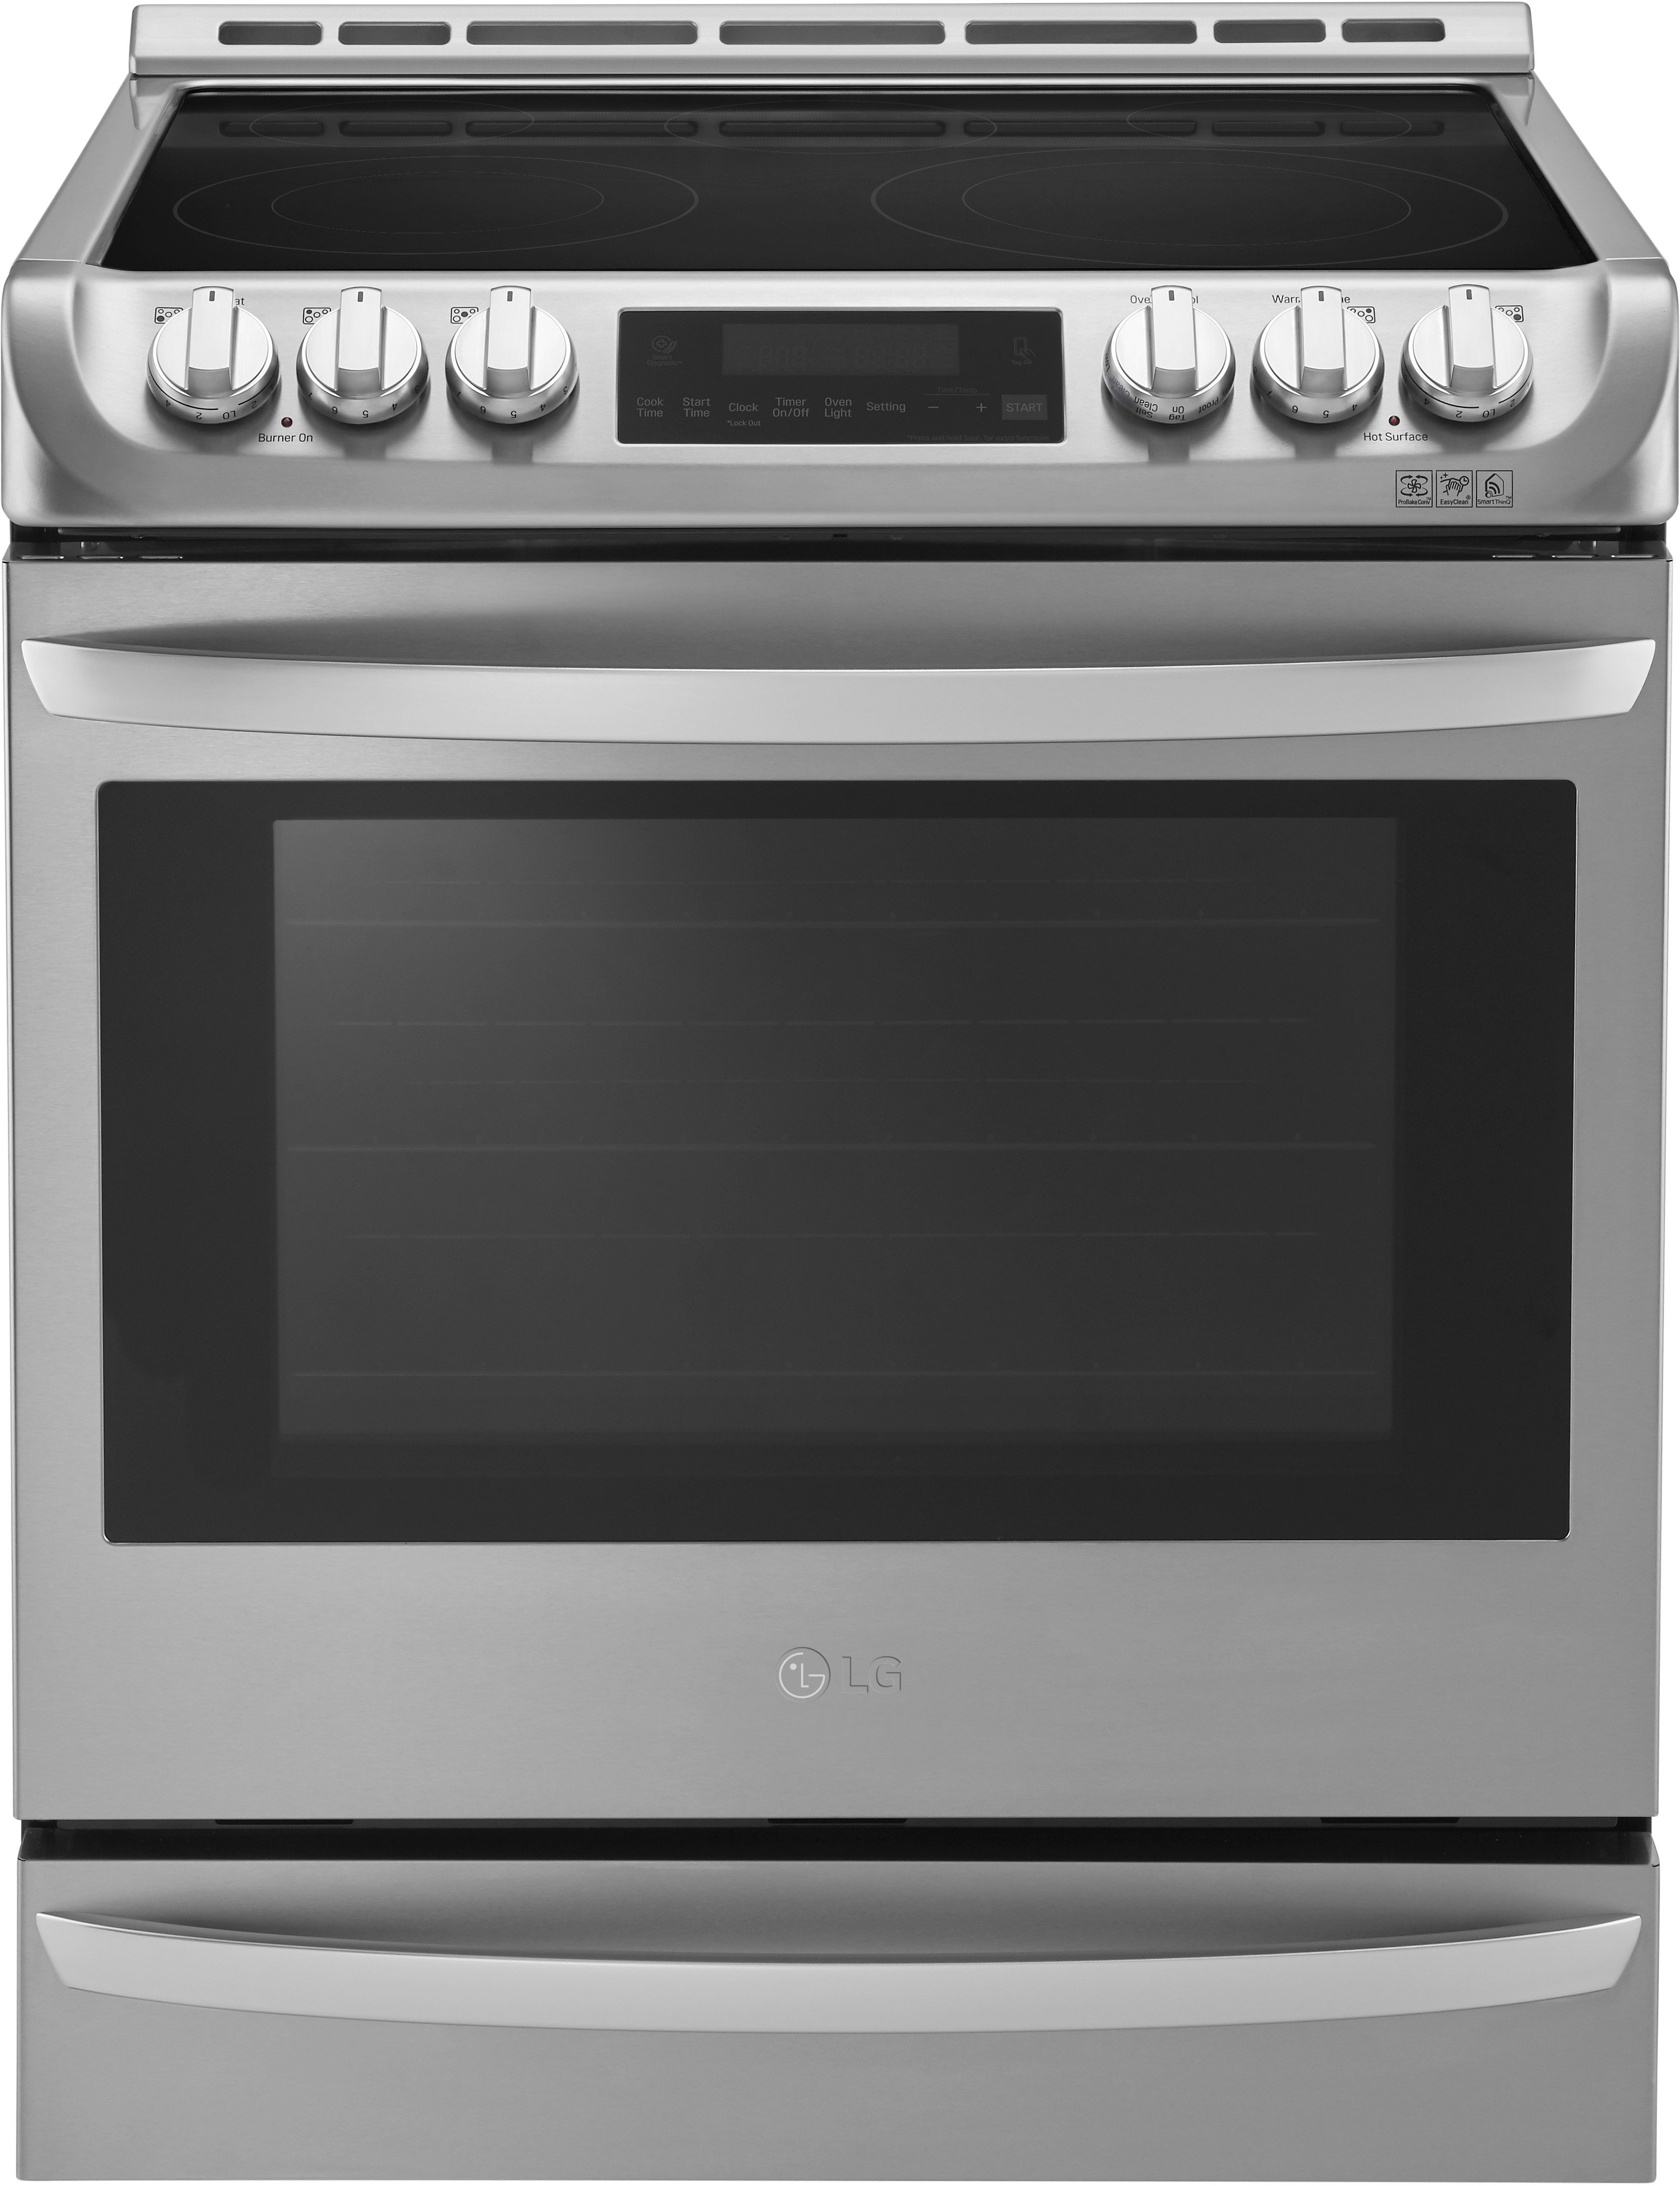 LG LSE4613ST 30 Inch Slide in Electric Range with ProBake Convection